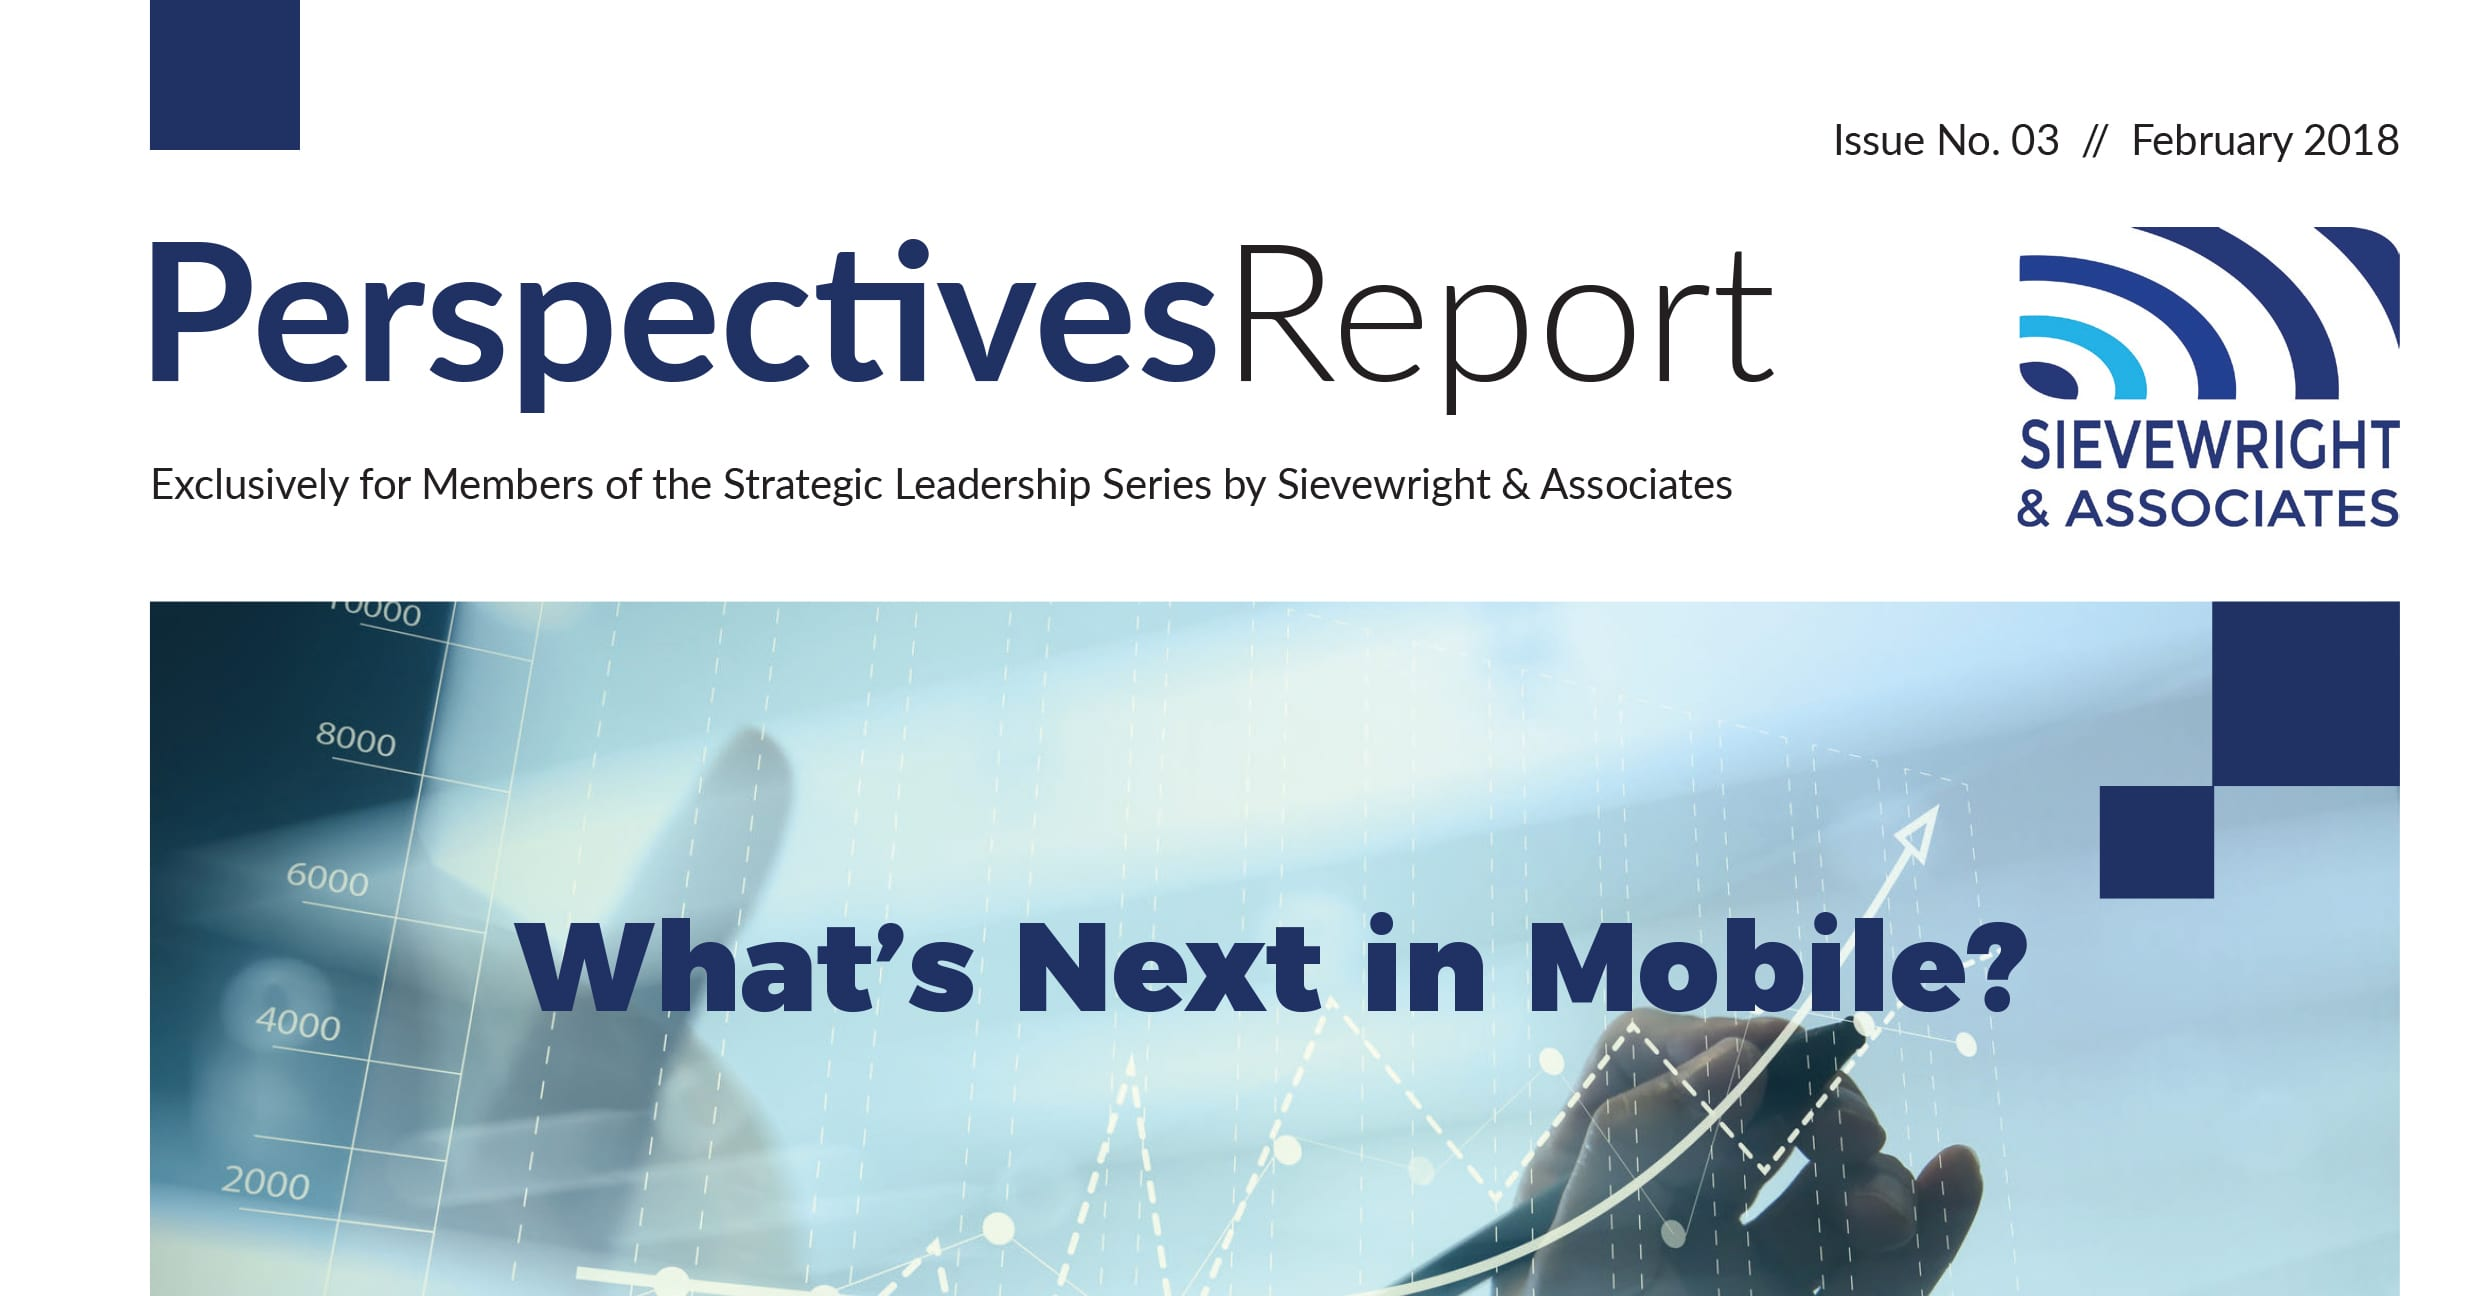 Perspectives Report Cover Image February 2018